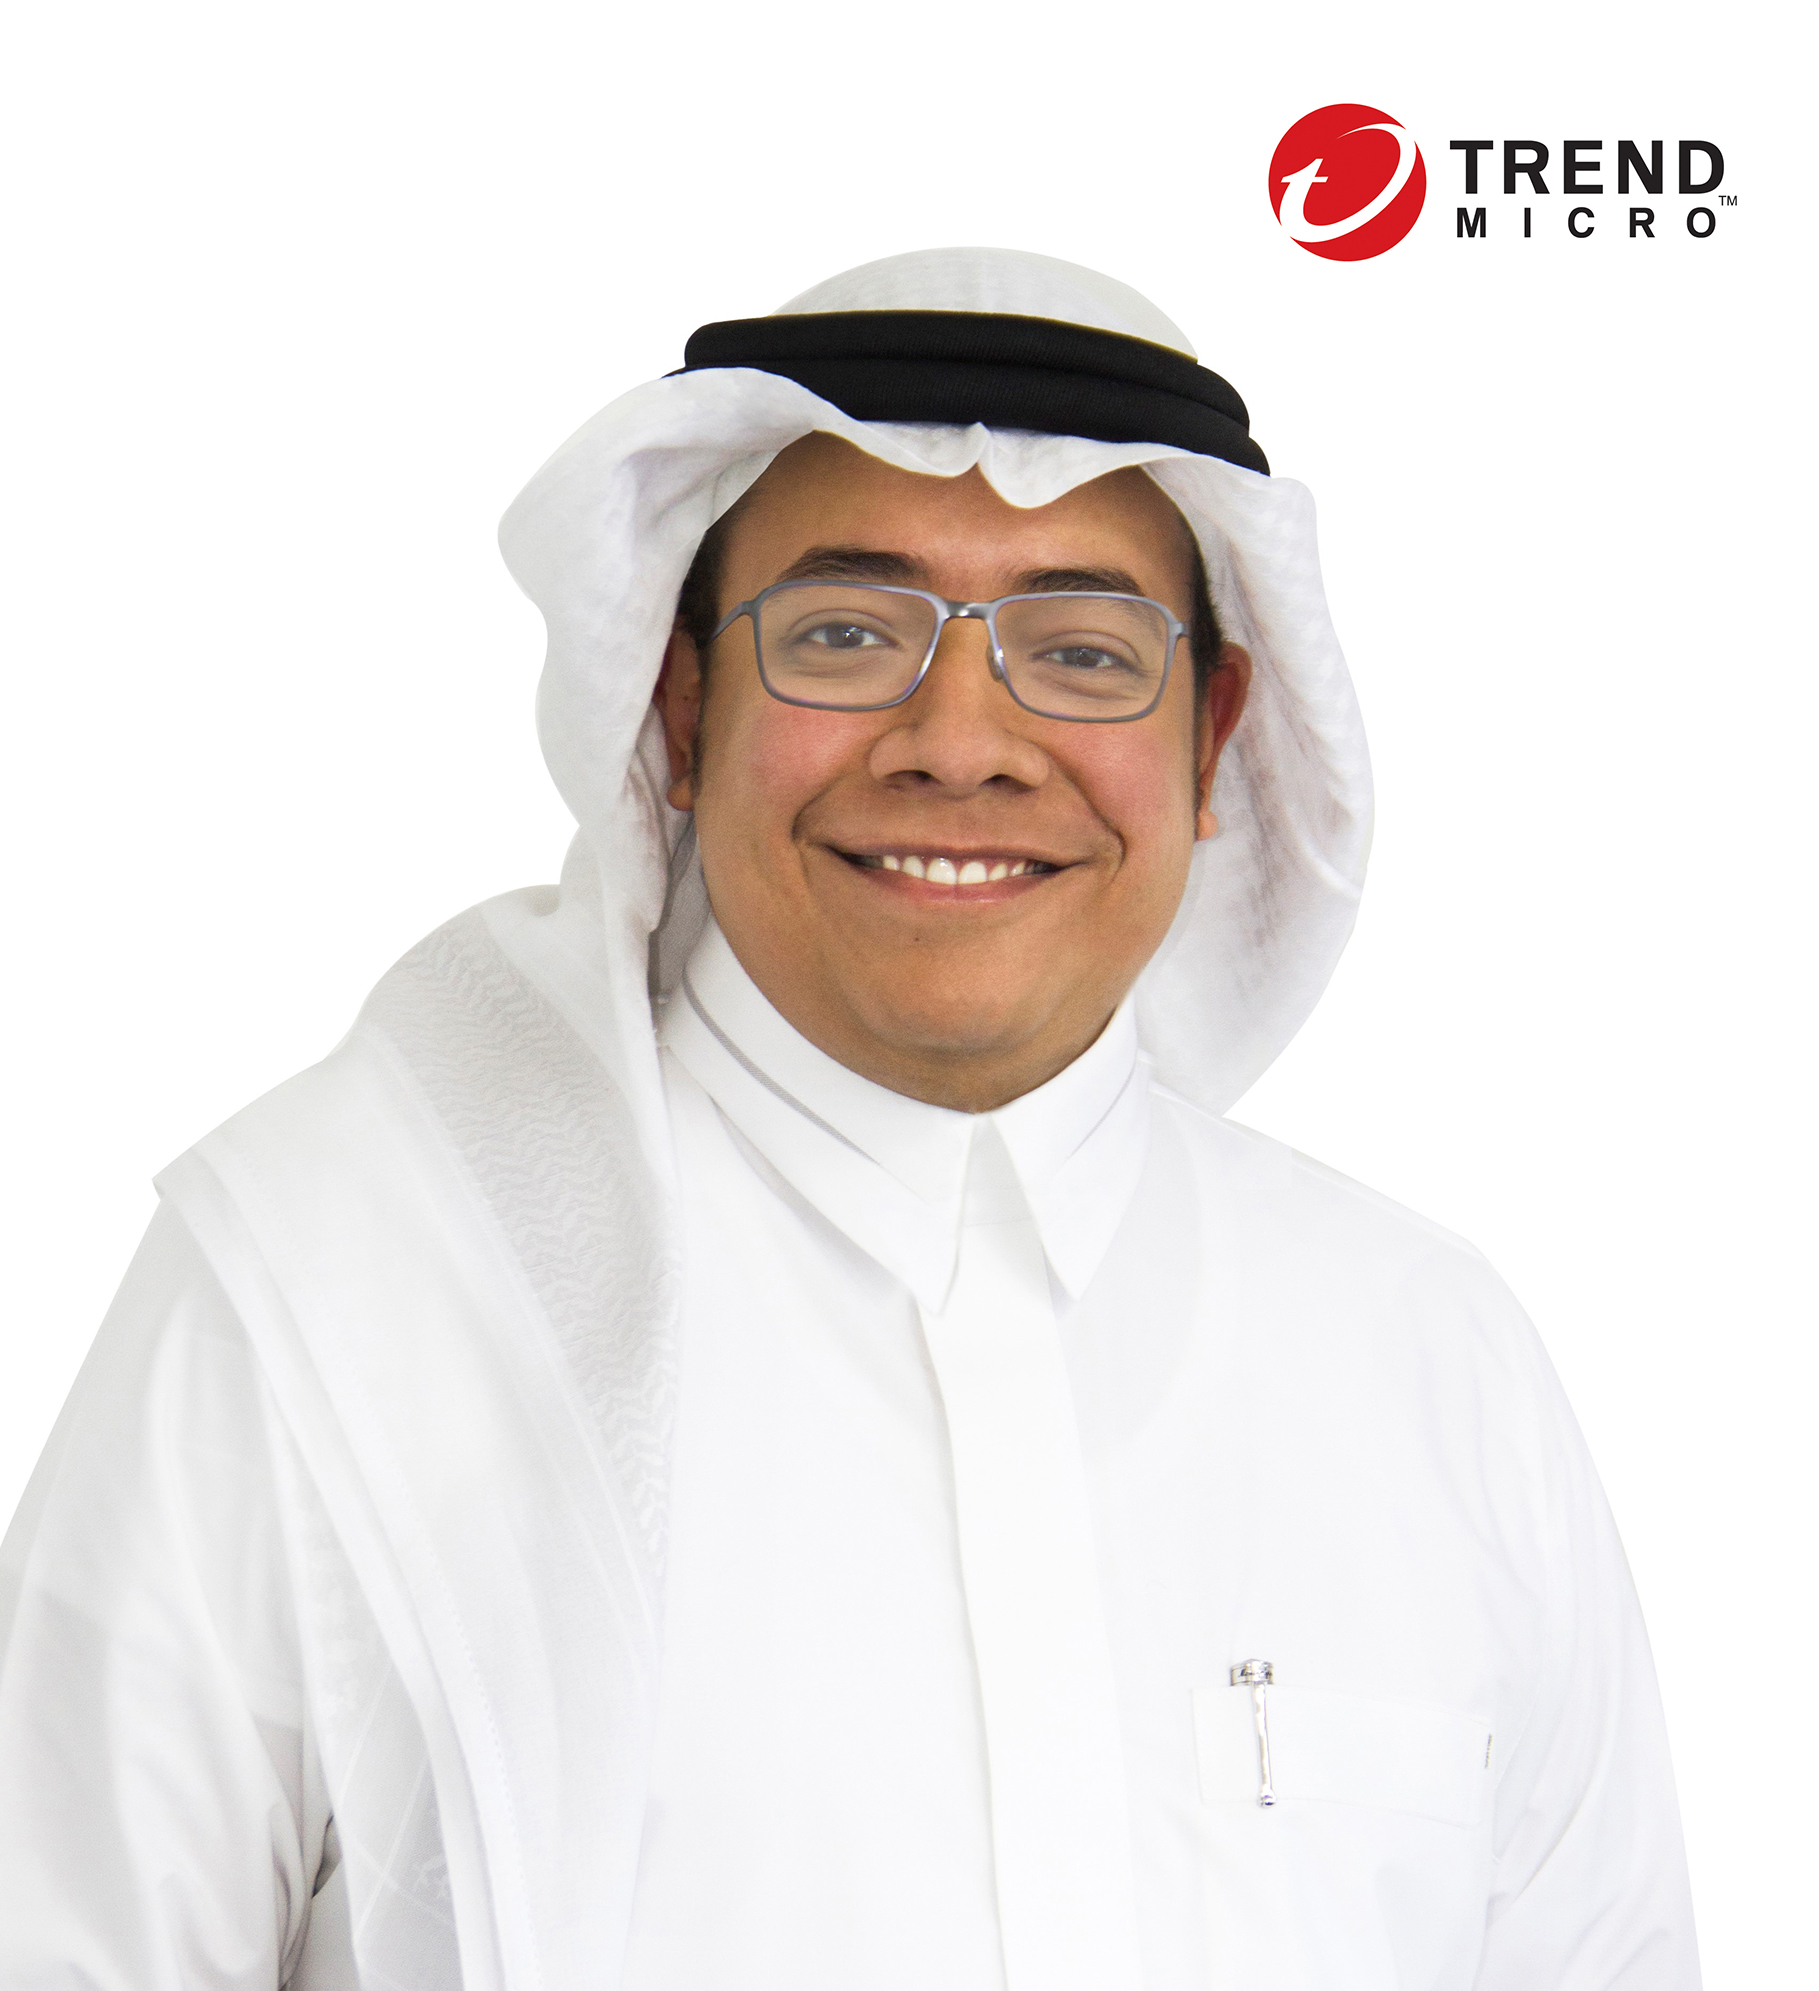 New appointment at Trend Micro